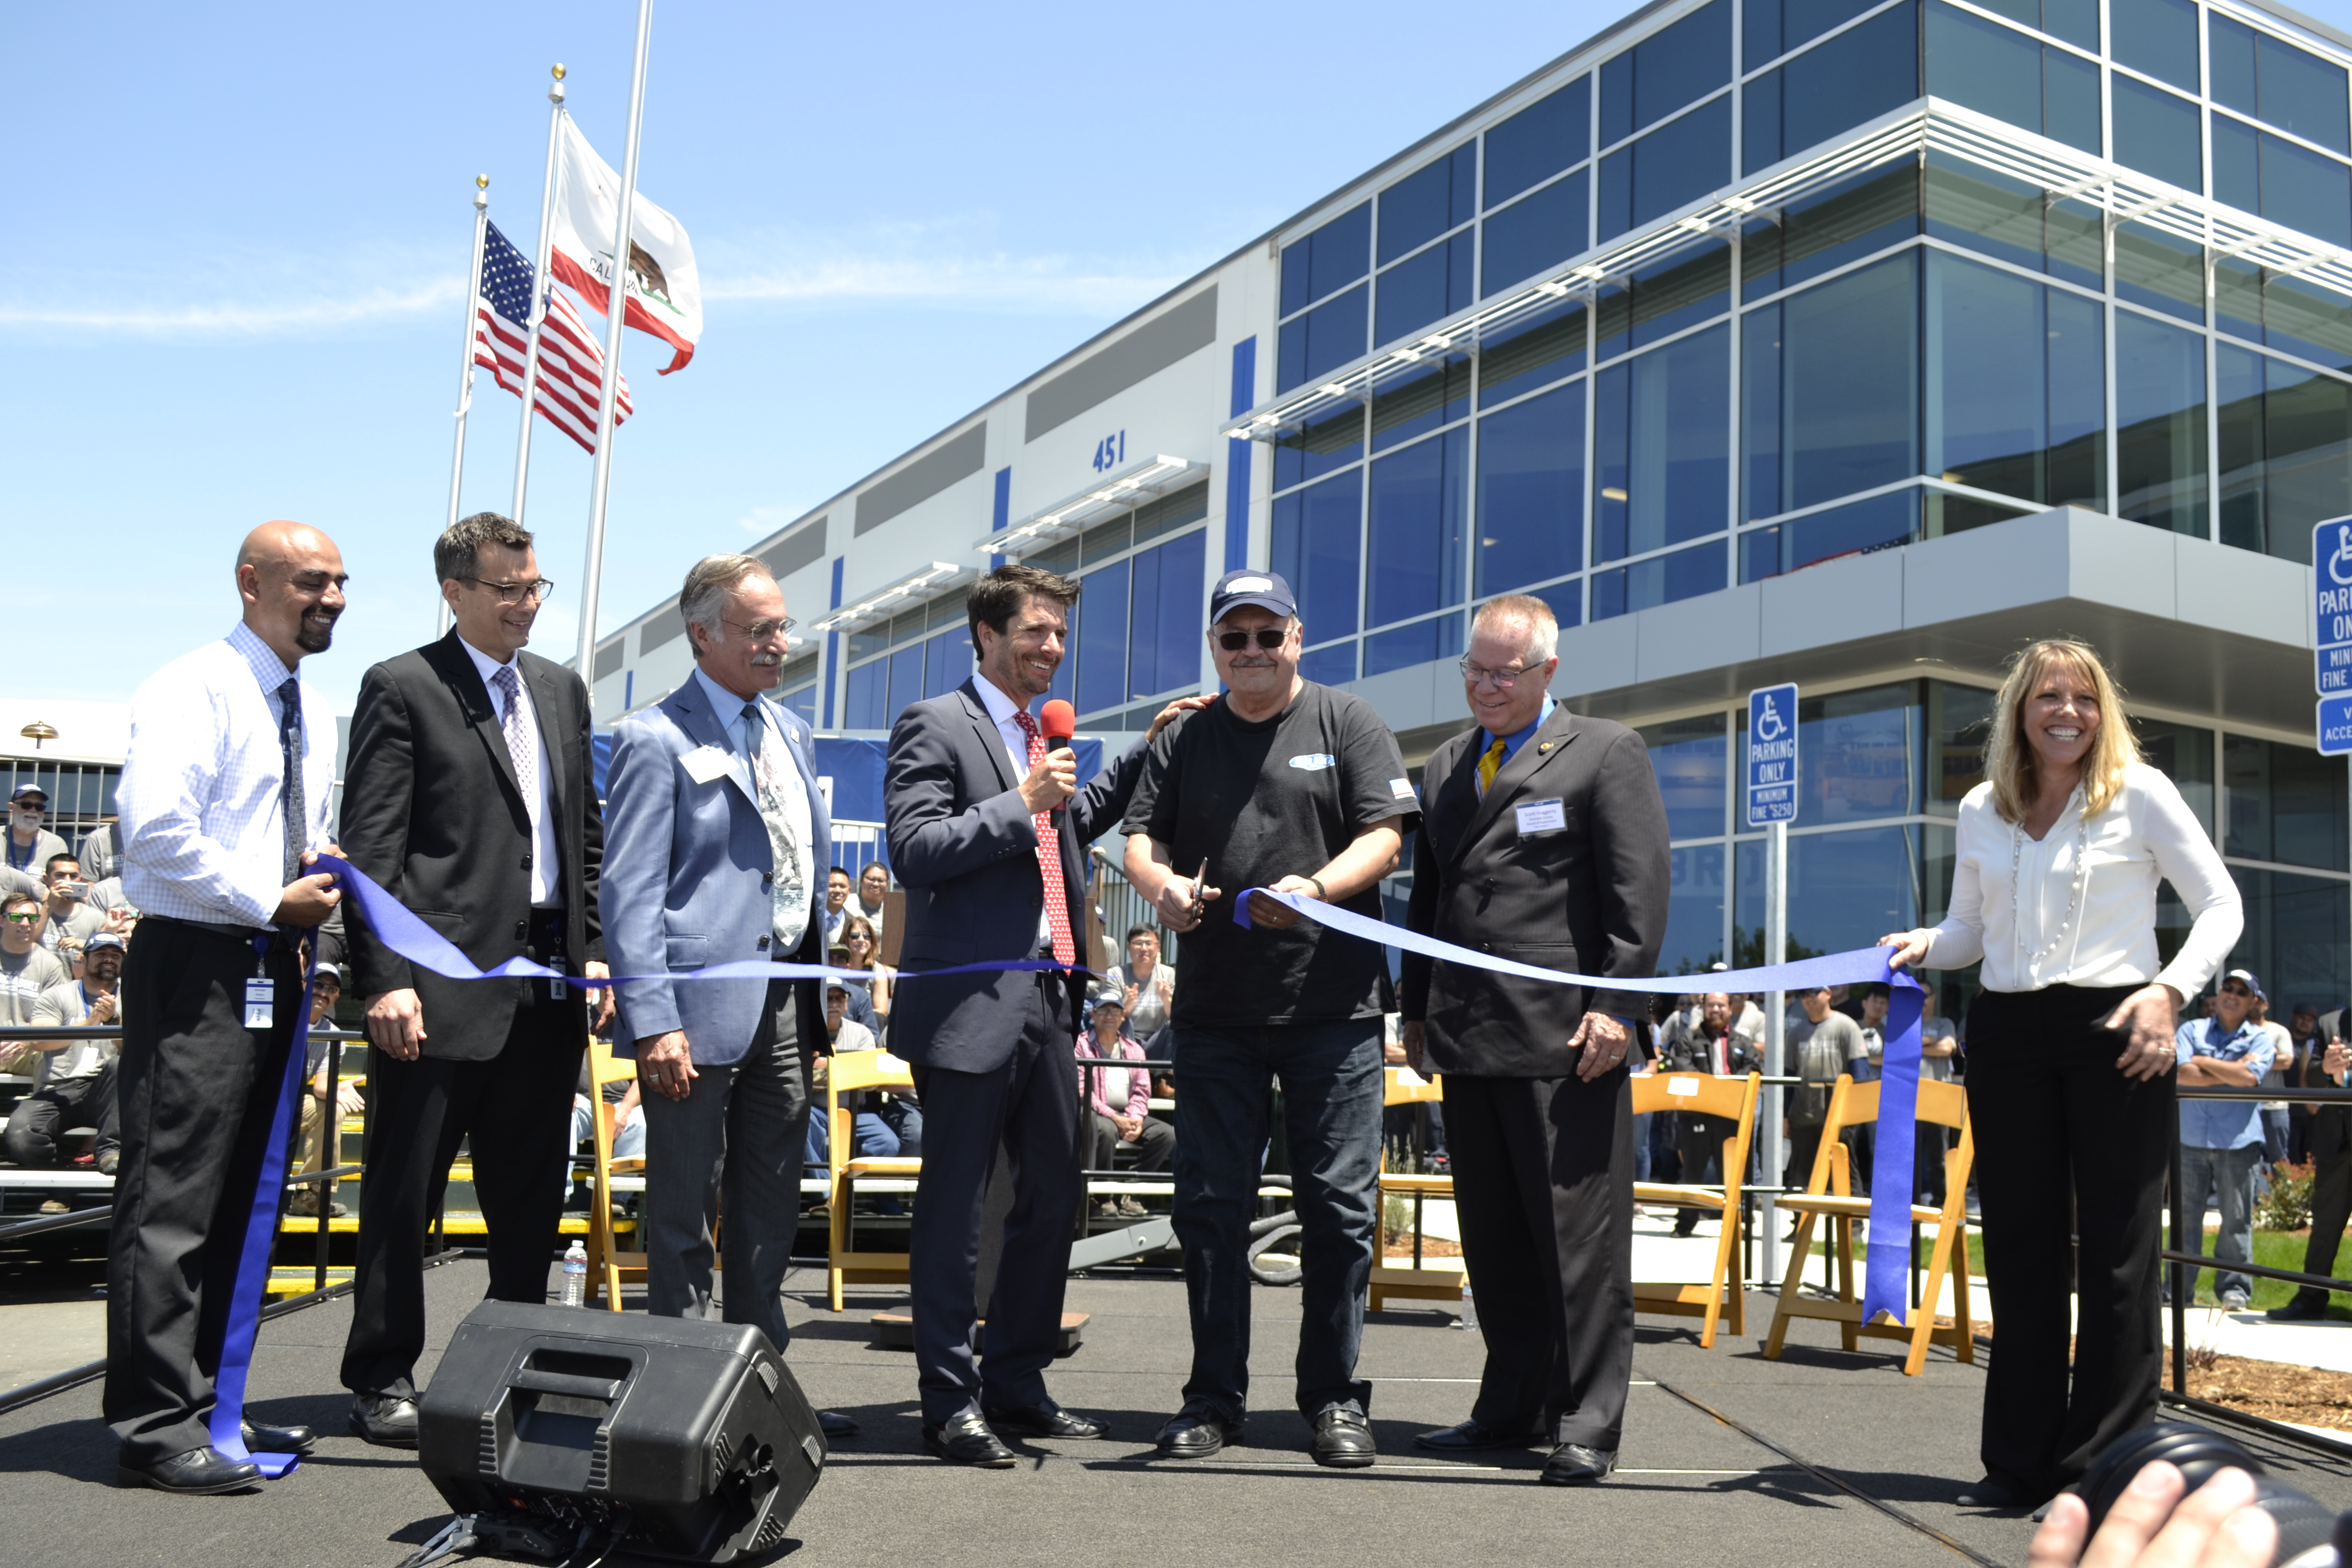 Gillig launches new 600K-square-foot facility in Livermore, Calif.